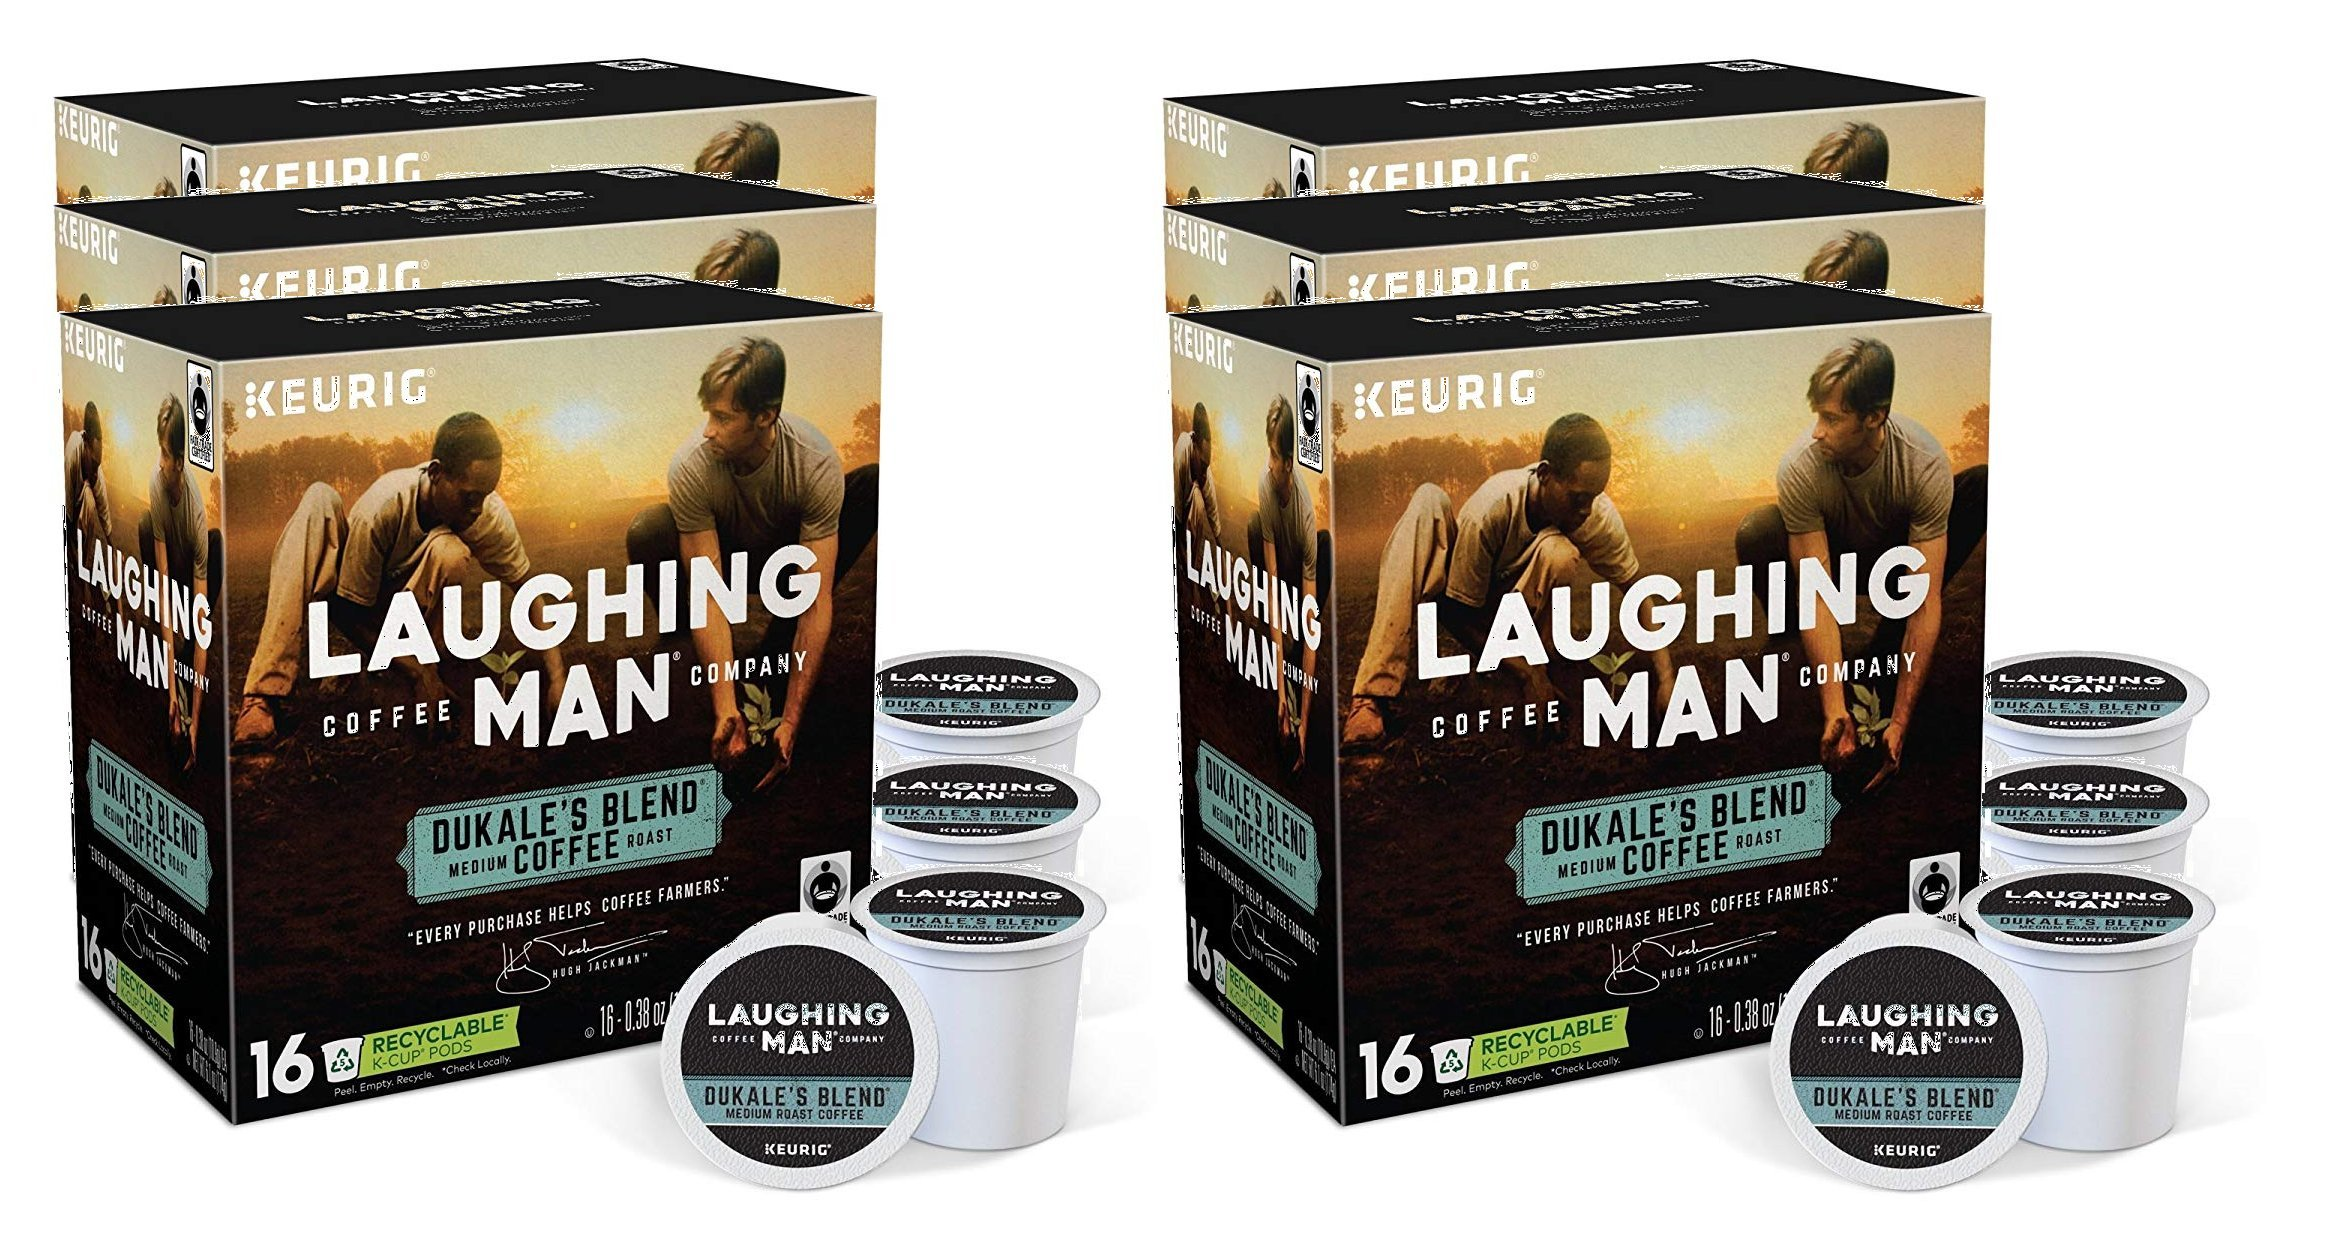 Laughing Man Dukale's Blend Coffee Keurig K-Cups, 96 Count by Laughing Man (Image #3)